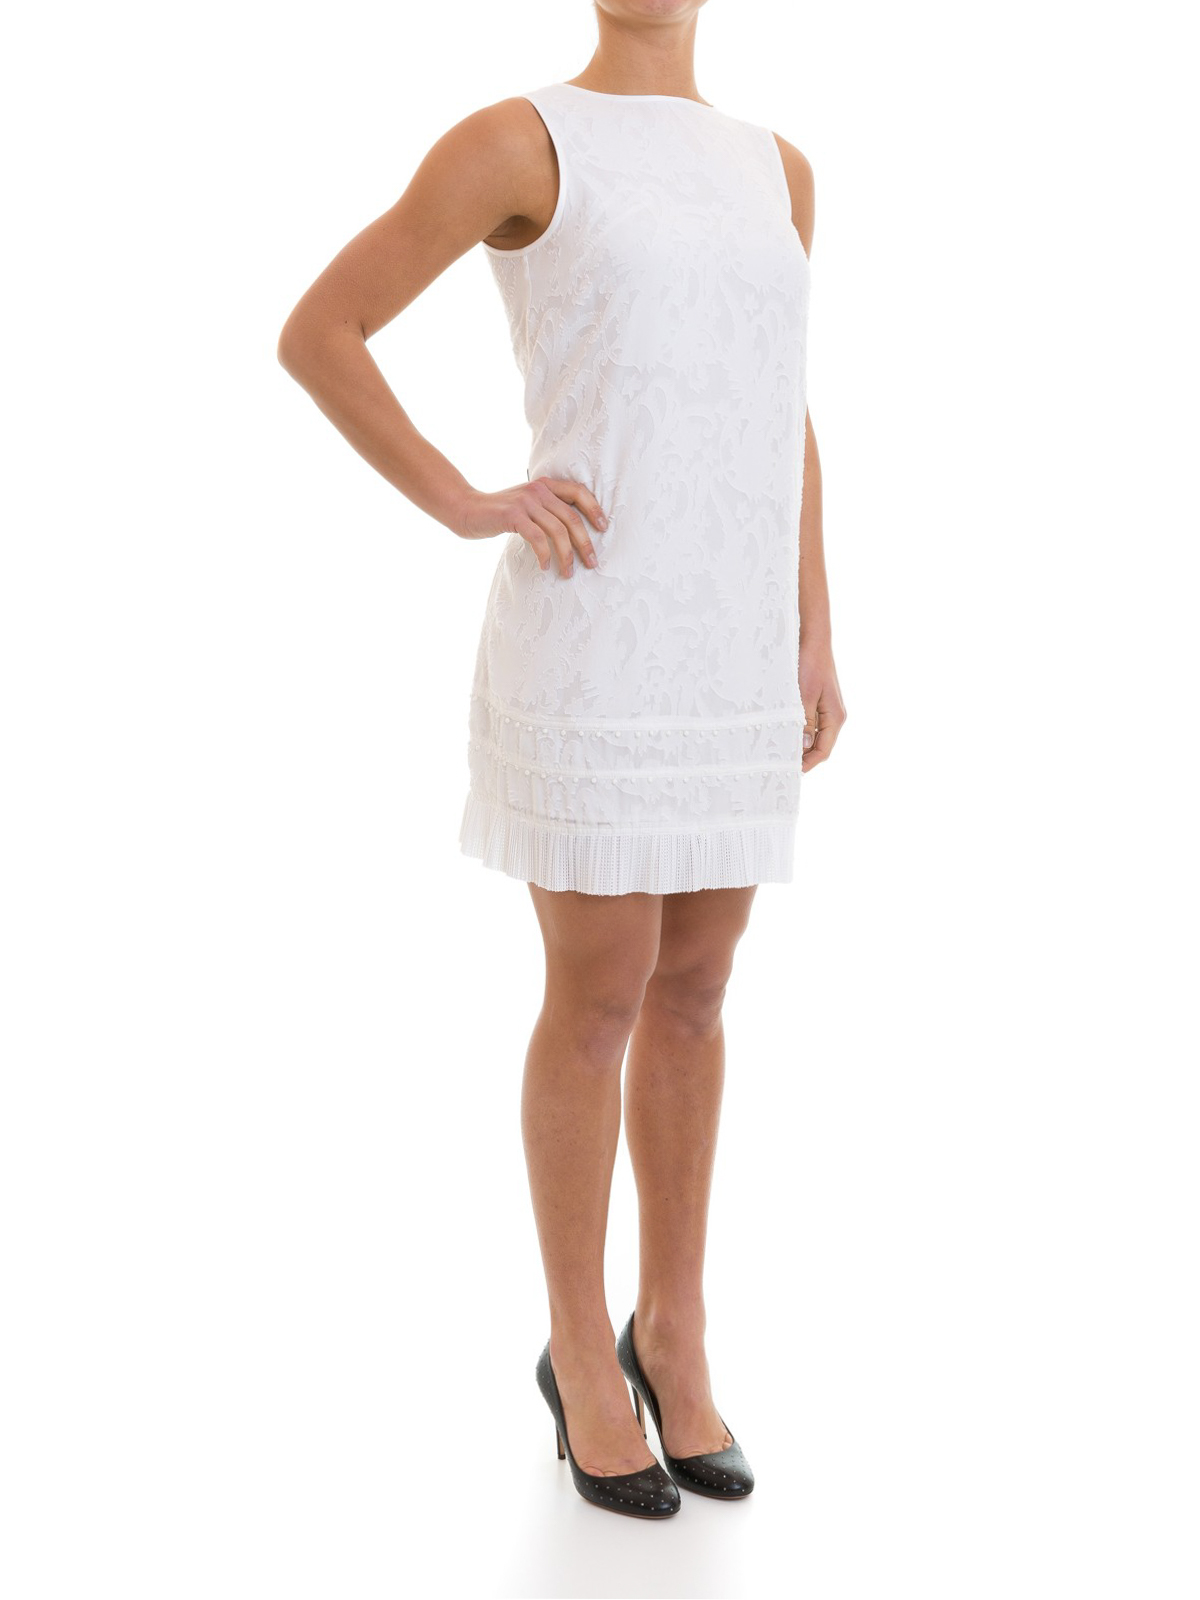 Embroidered and fringed white dress by Emporio Armani - cocktail ...